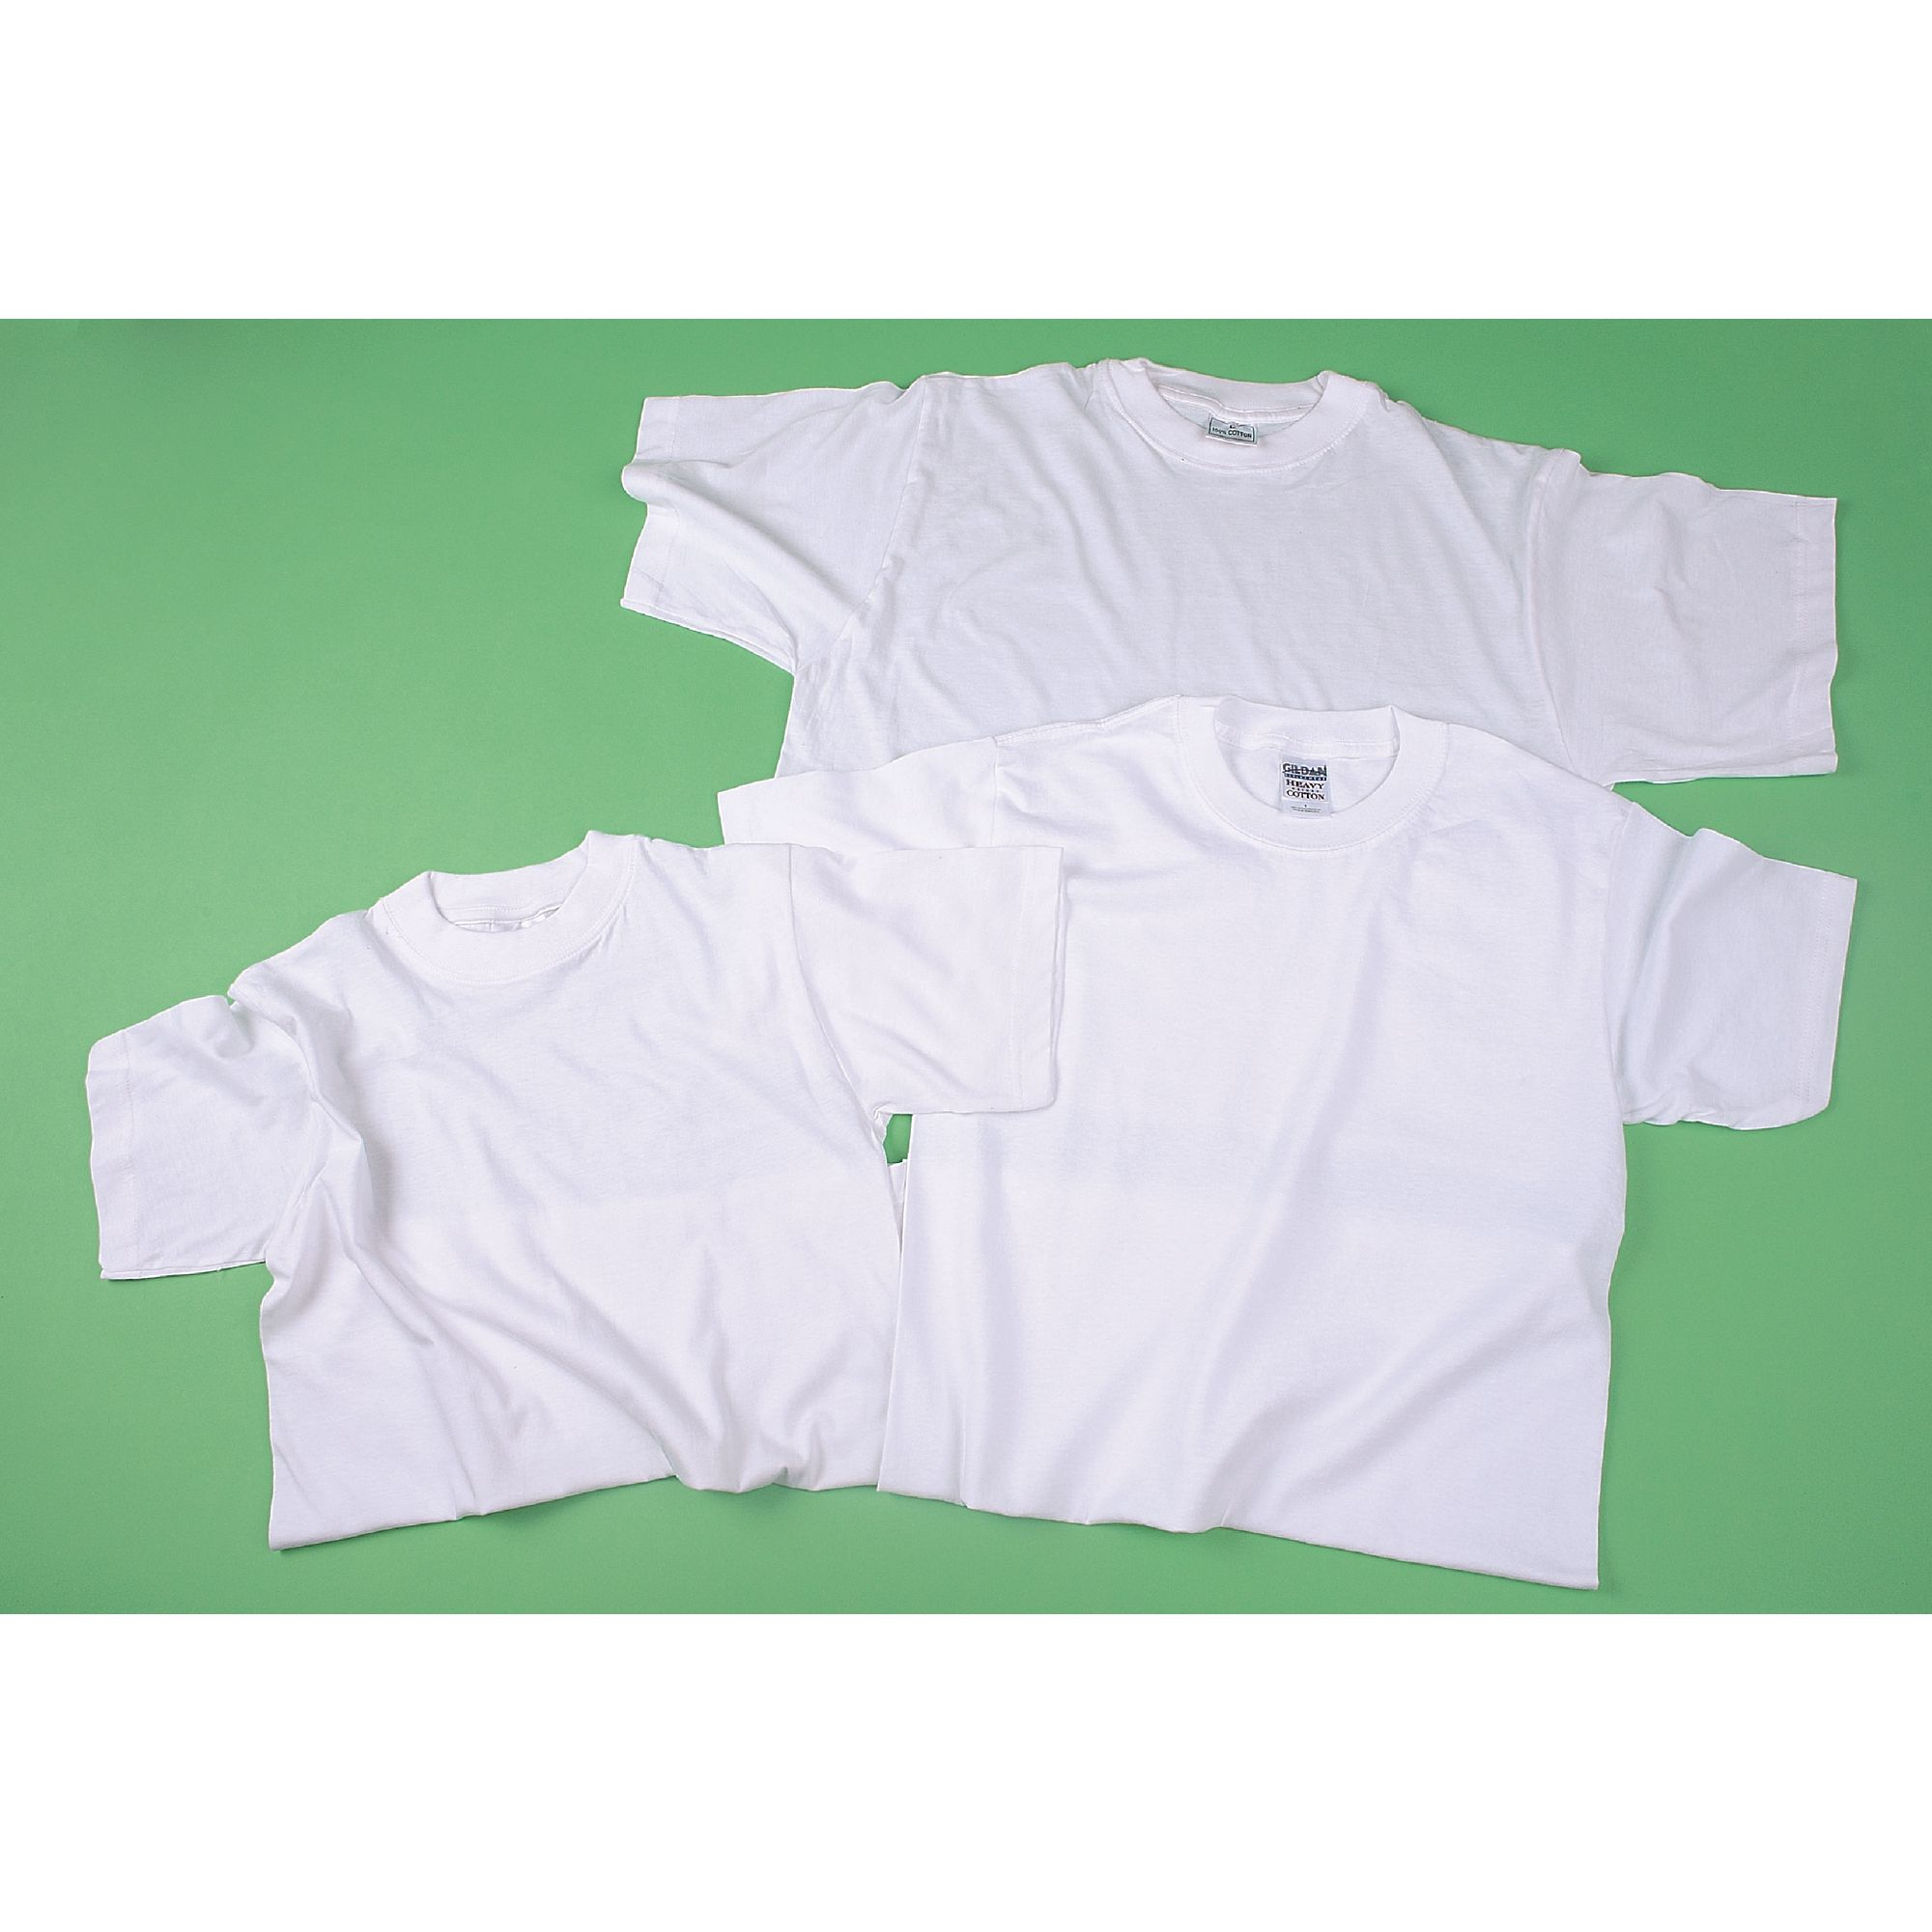 Sports Day T- Shirt 73cm Chest